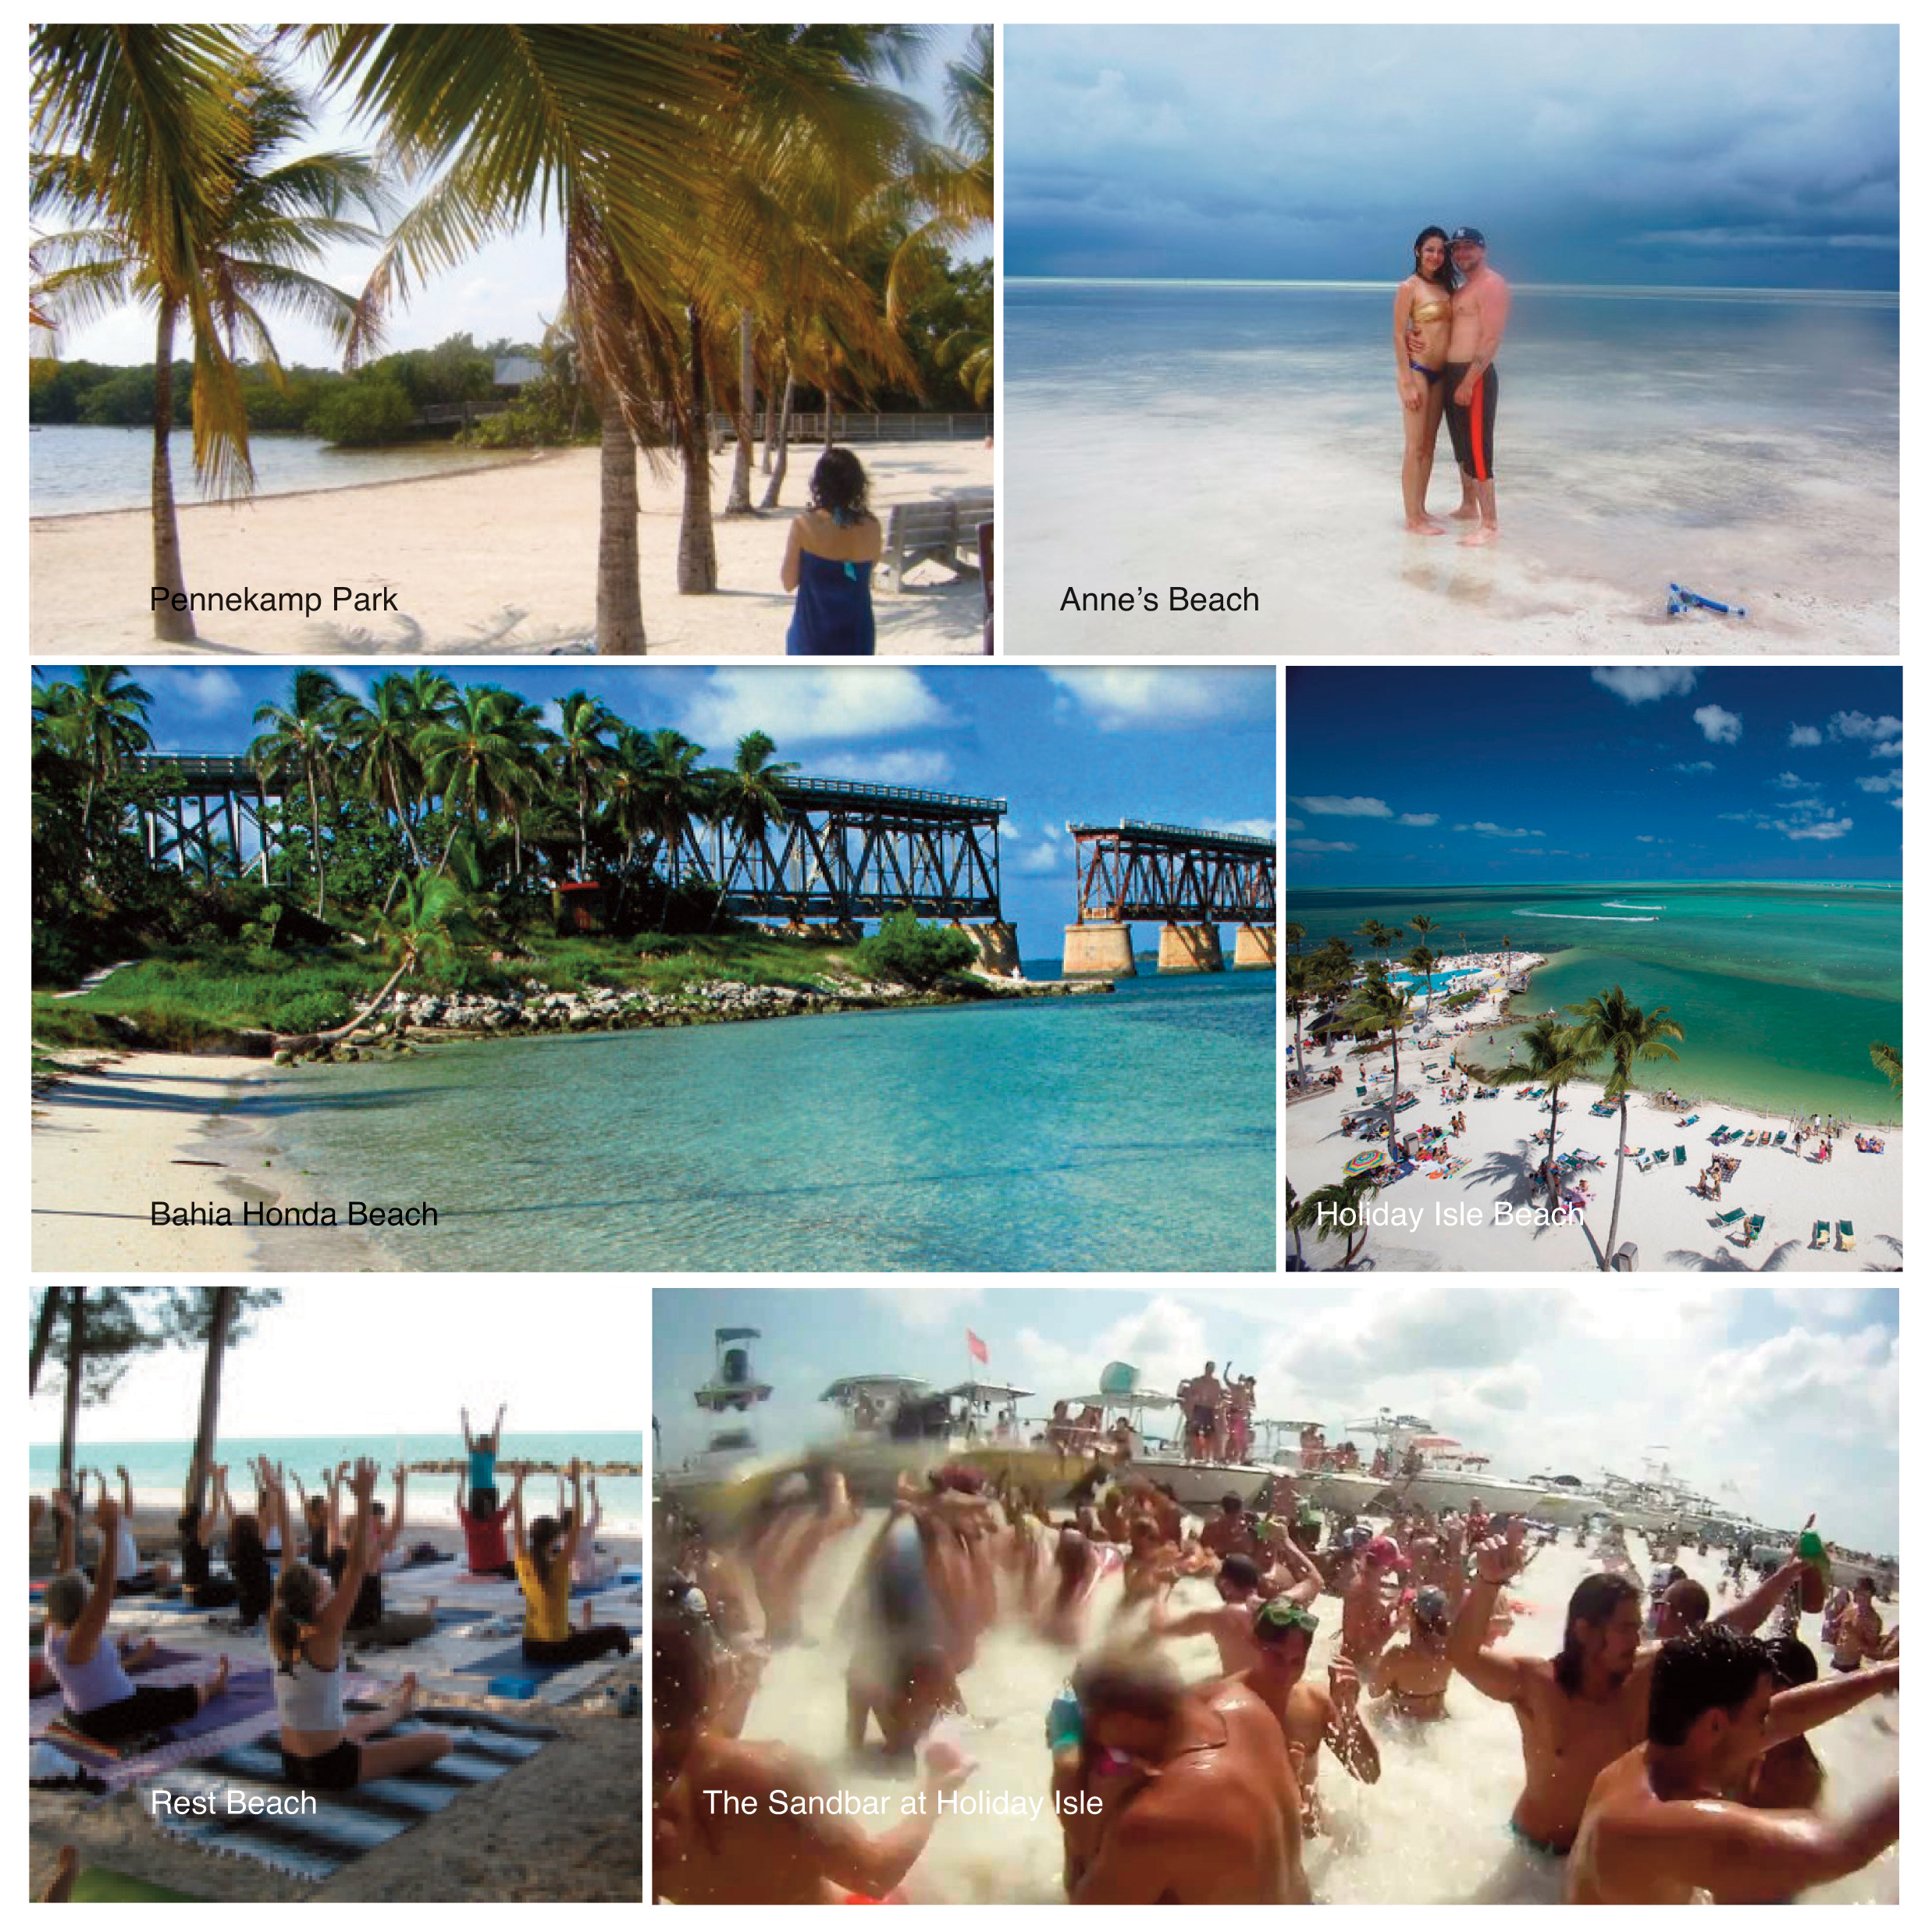 People Expect The Florida Keys To Be One Long Endless Stretch Of Sandy Beach But Instead Have Incredible C Reefs And Those